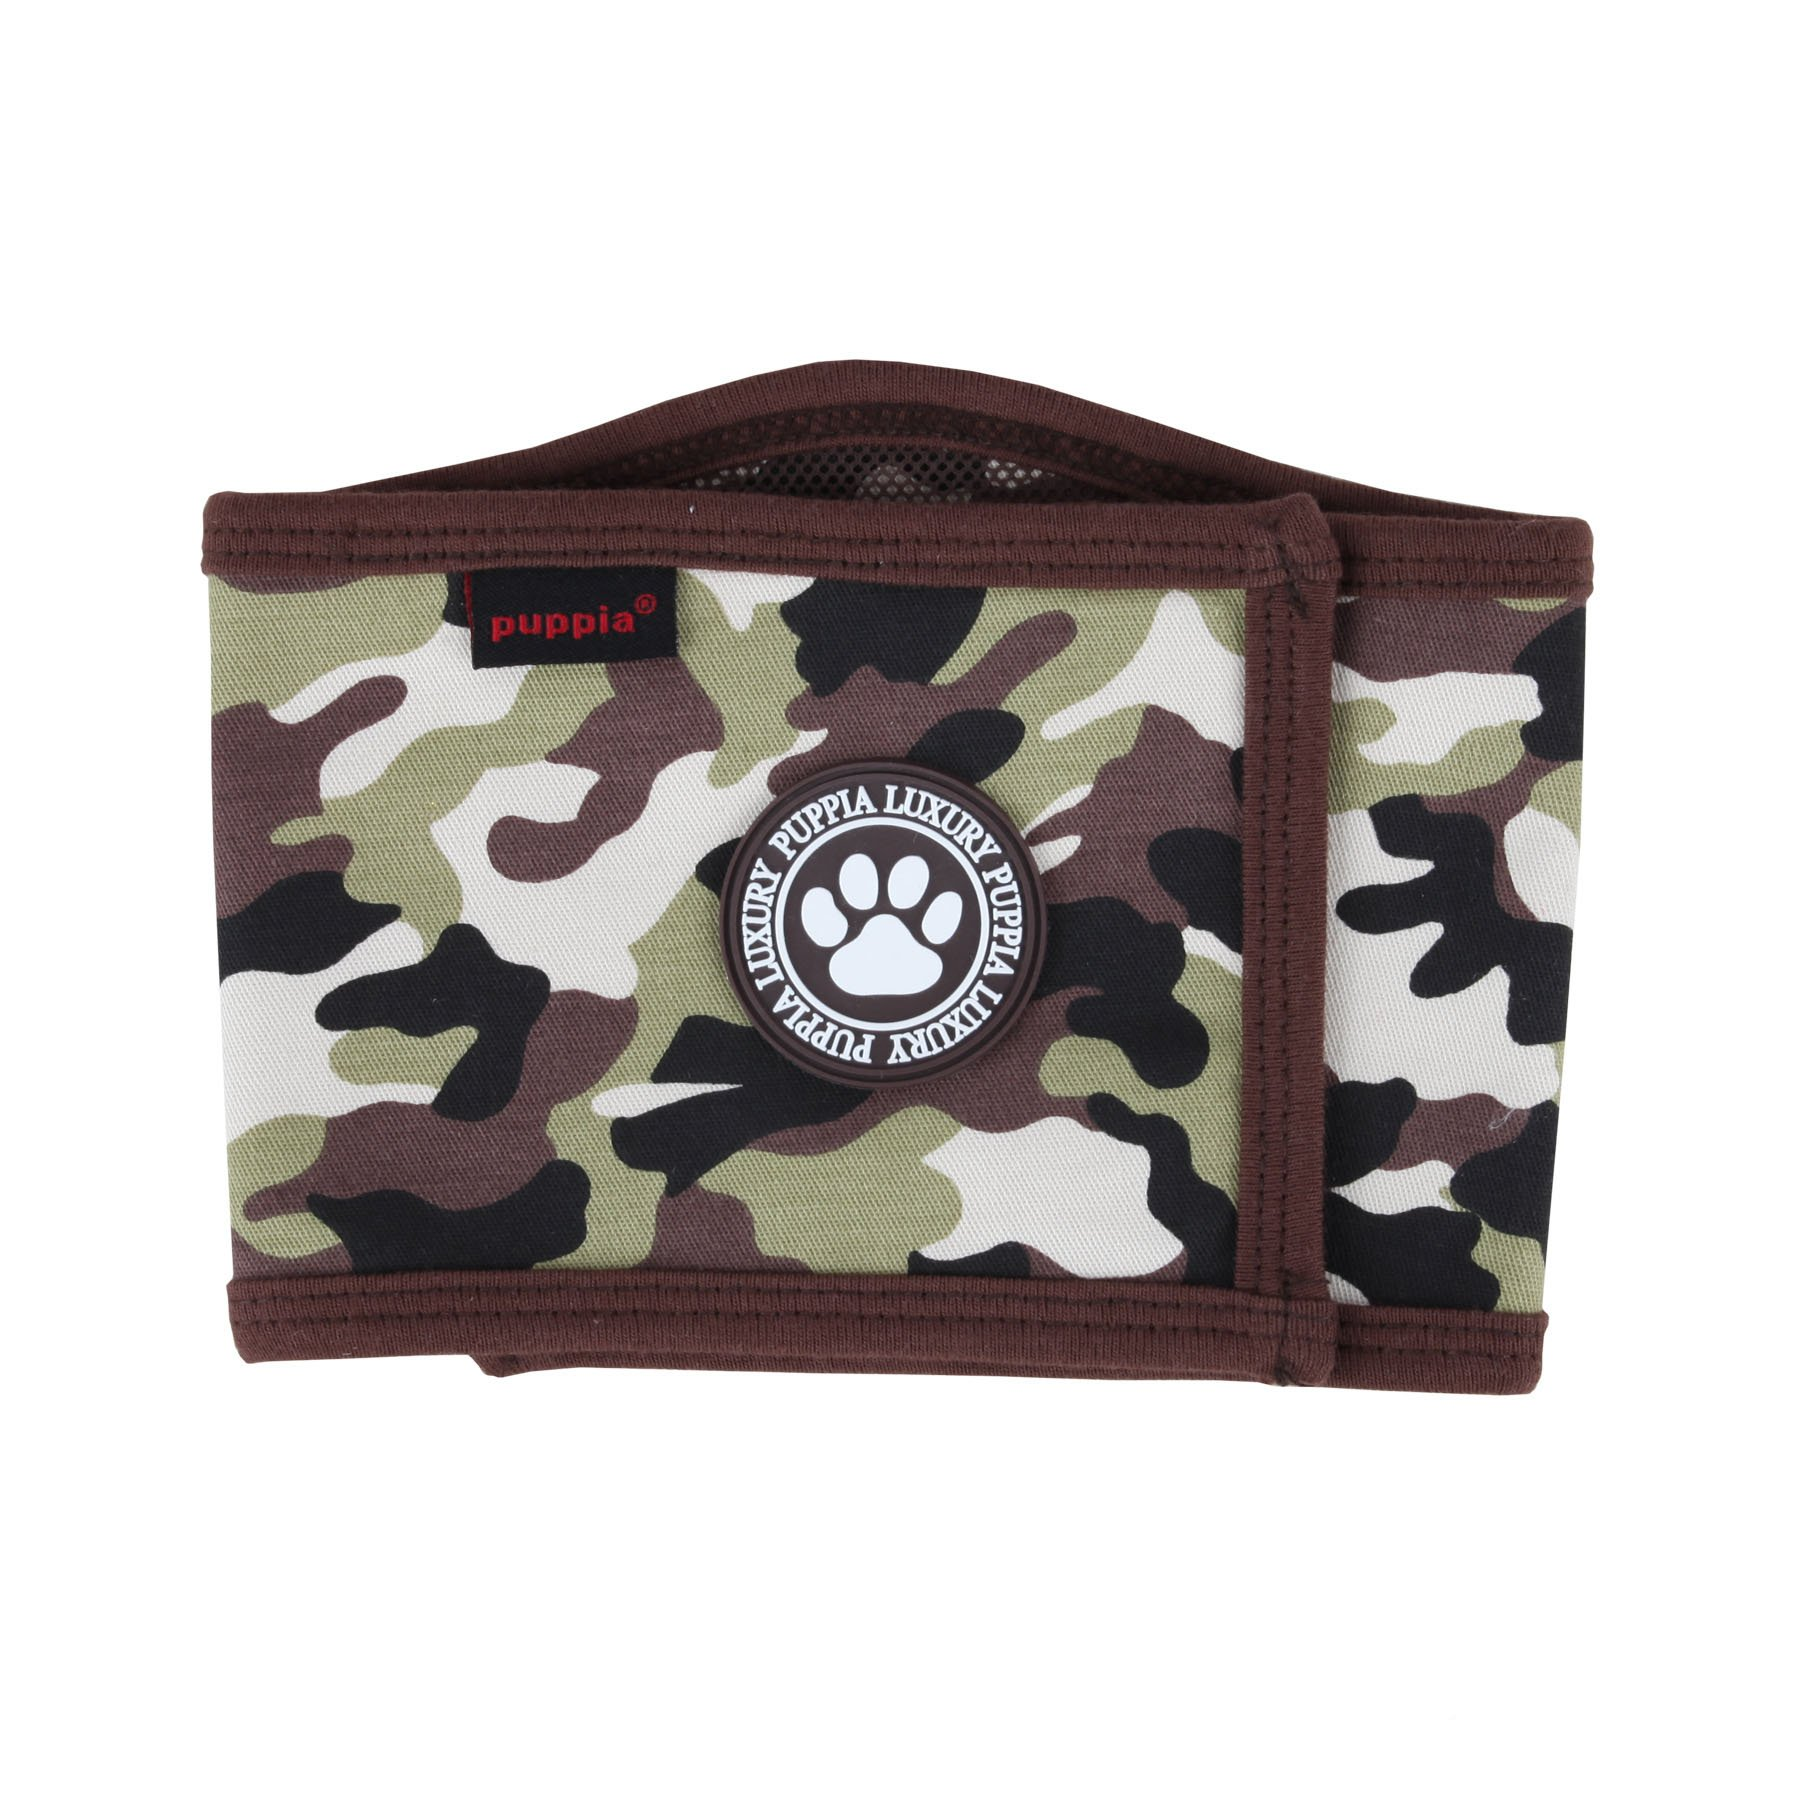 Puppia Camo Legend Manner Band, Large, Brown